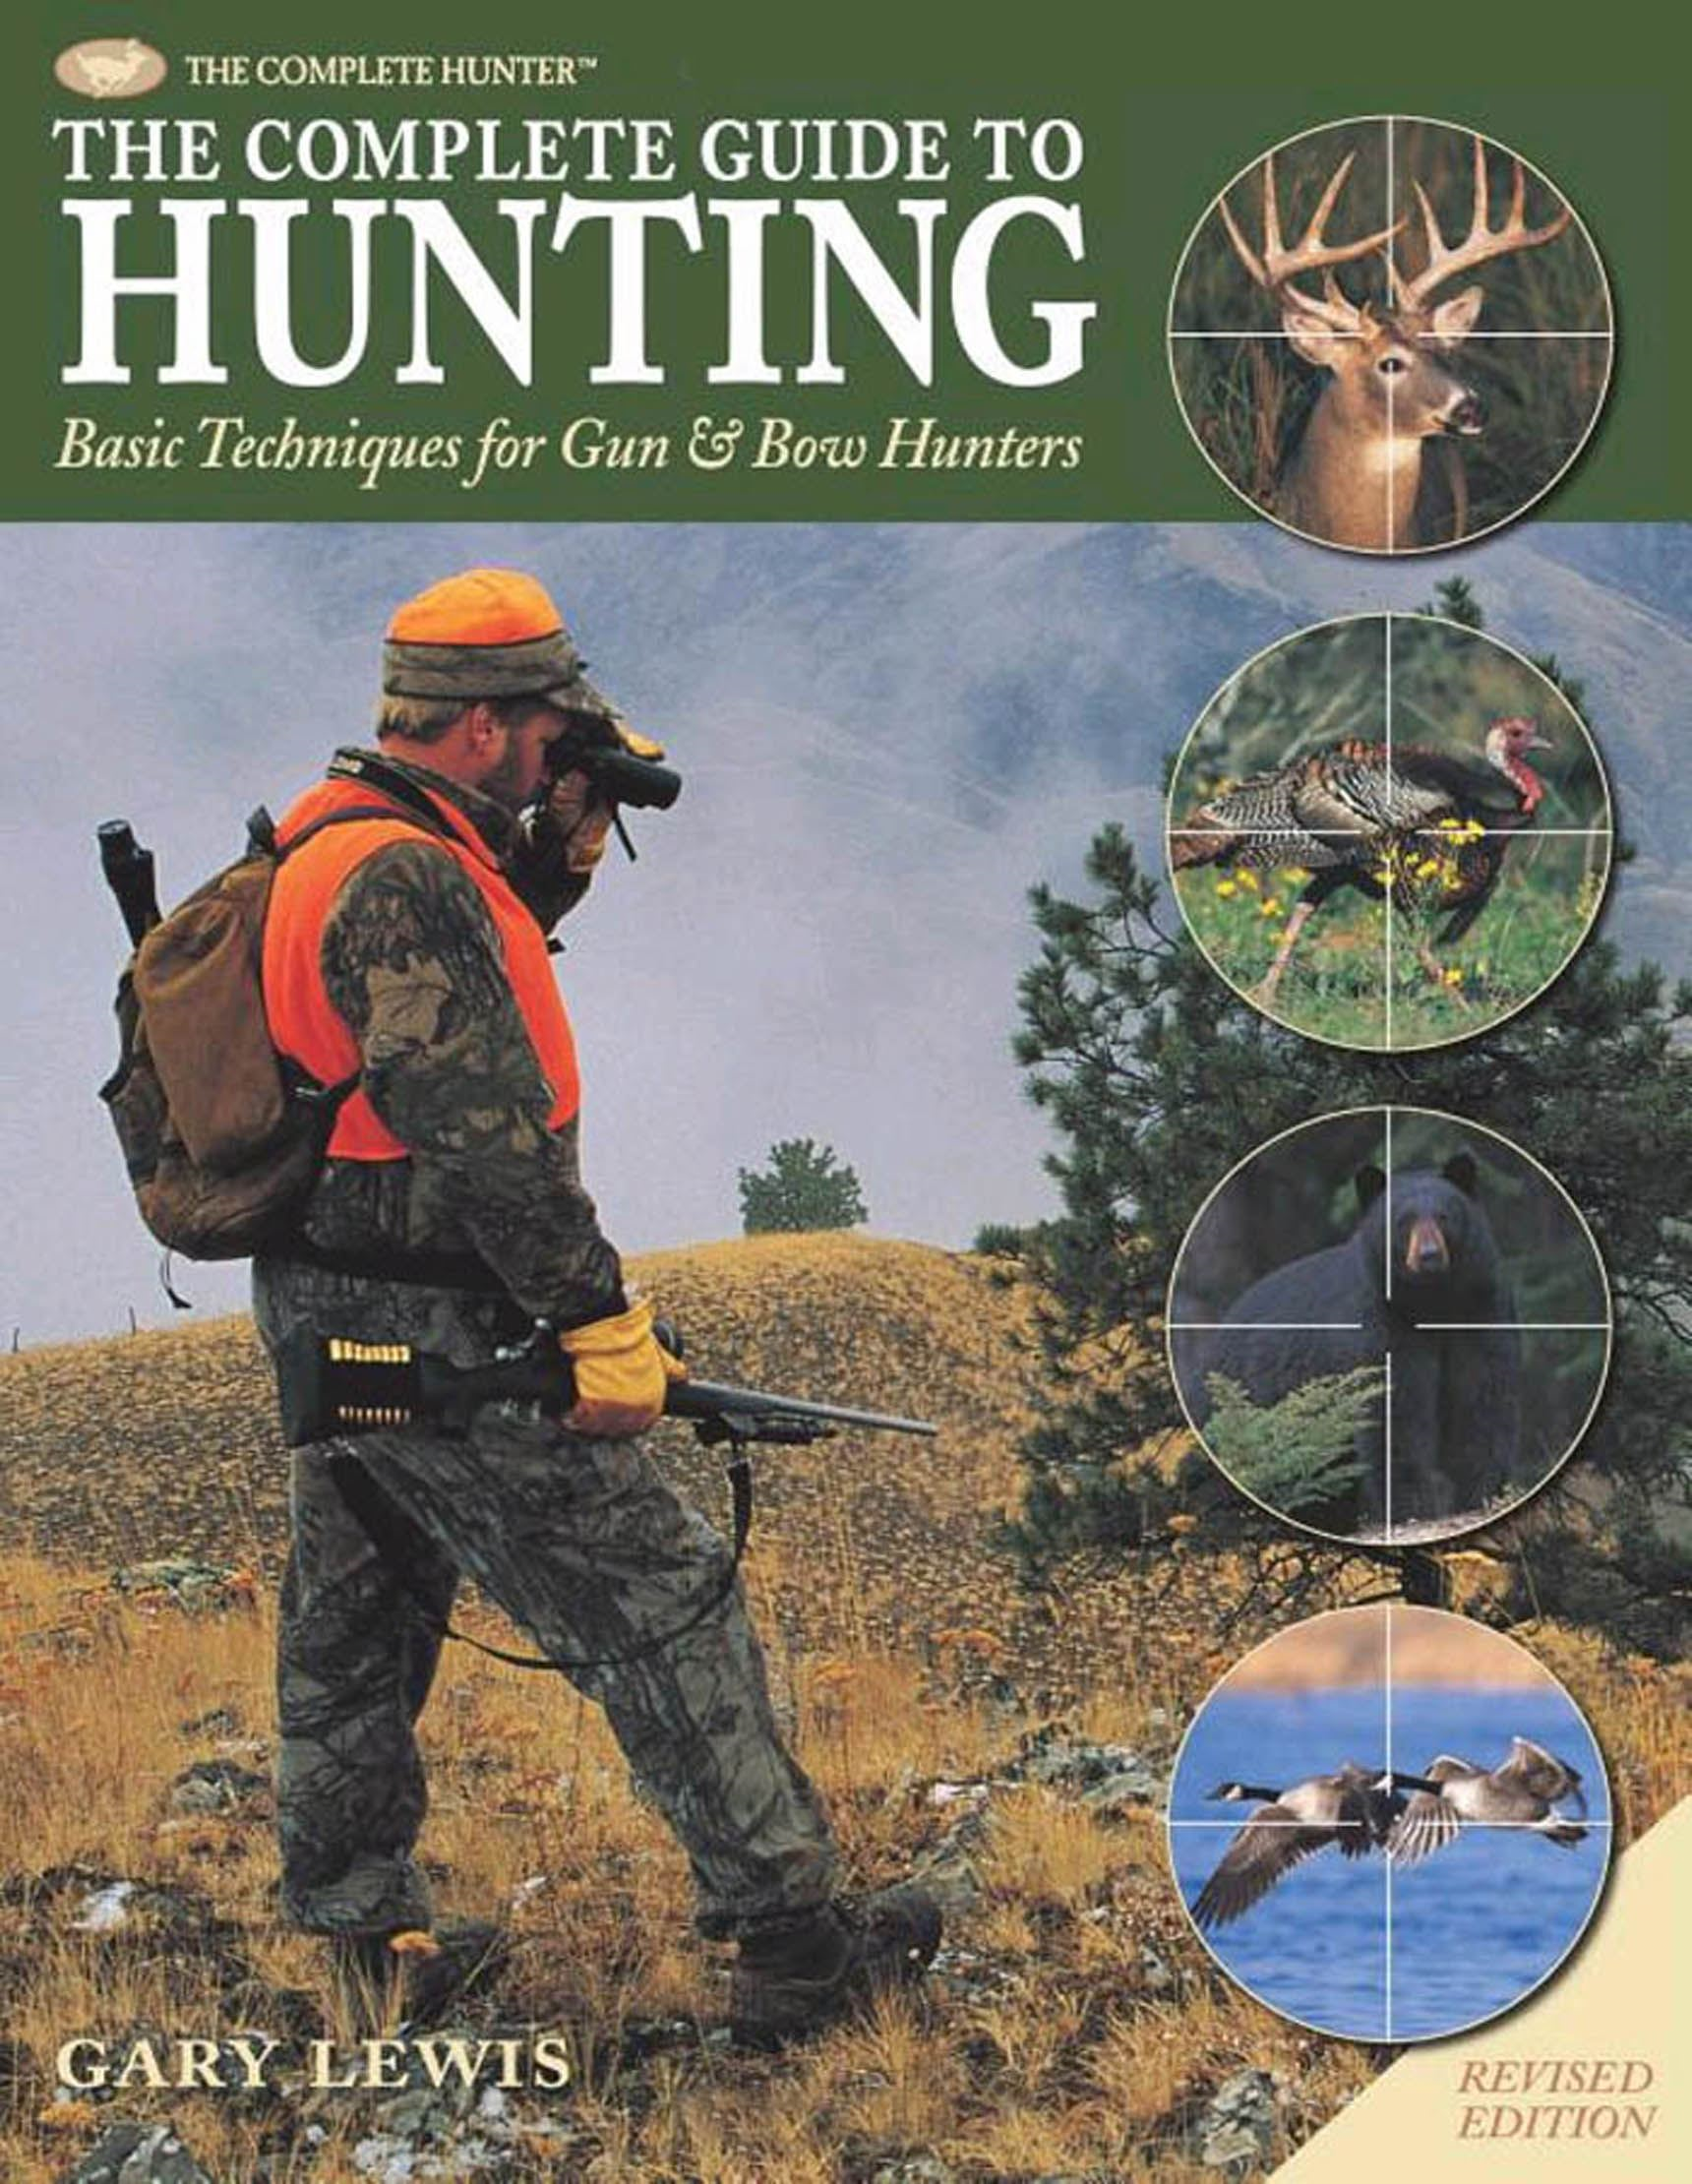 Complete Guide to Hunting: Basic Techniques for Gun & Bow Hunters By: Gary Lewis